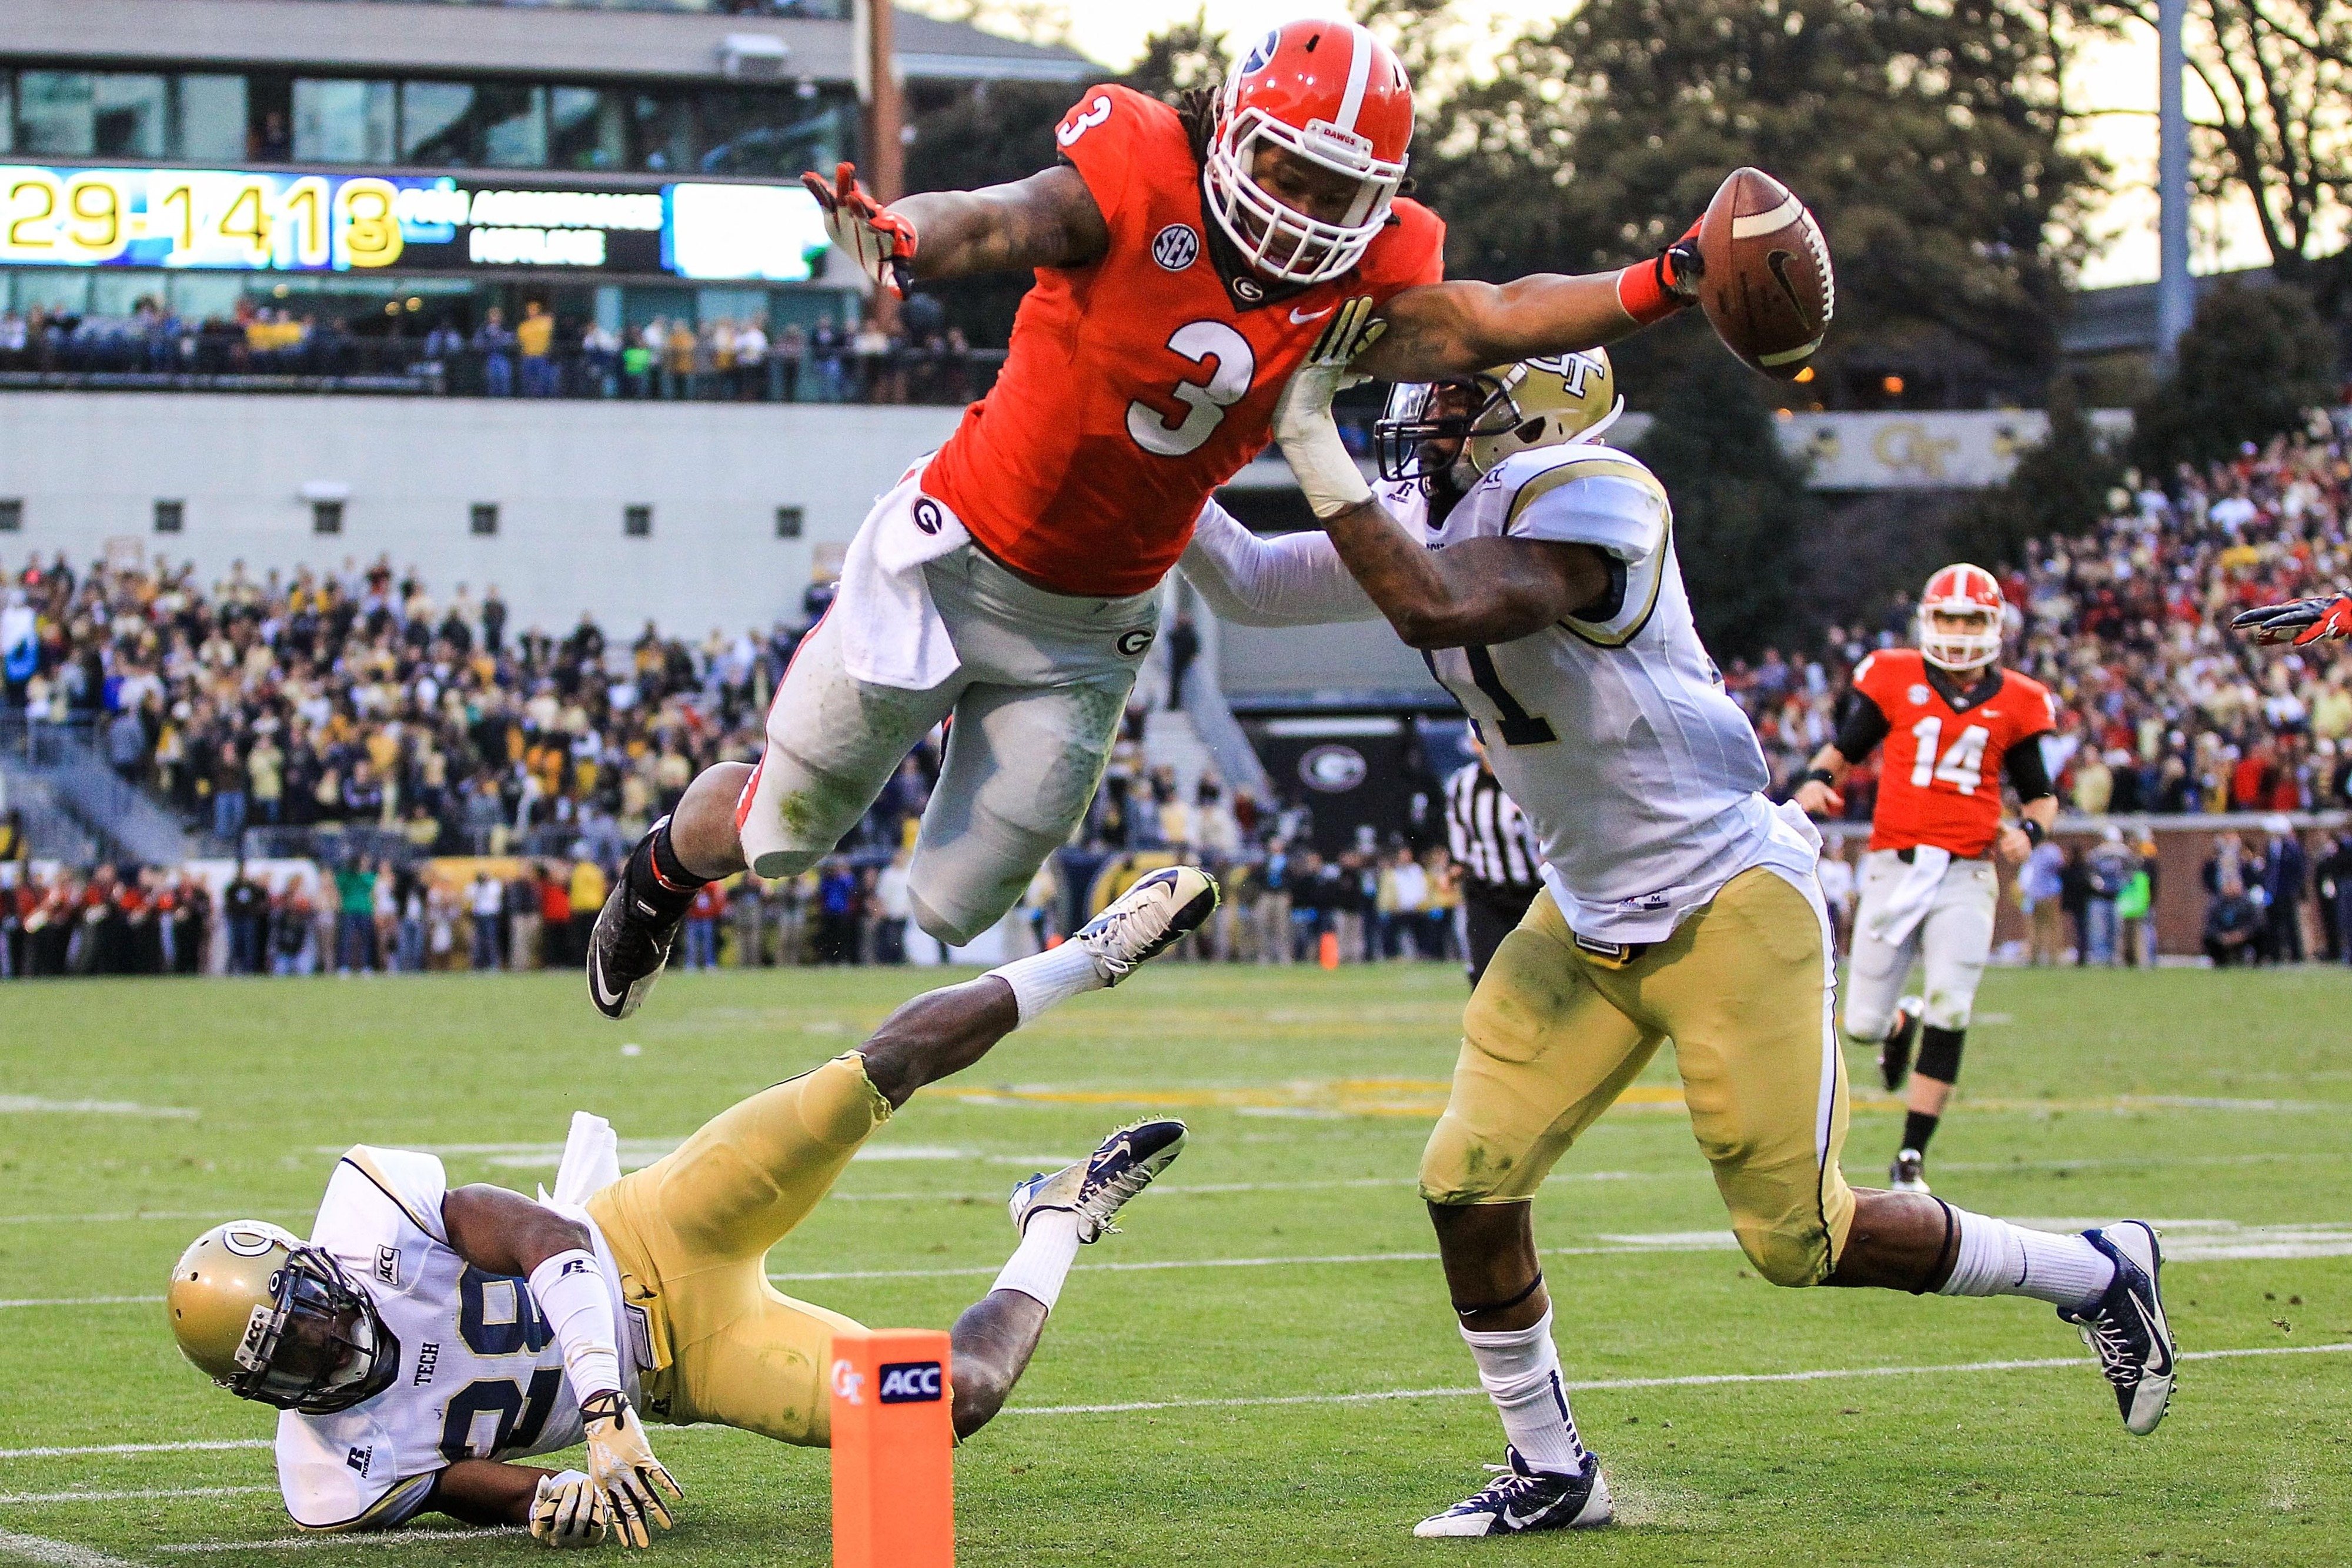 Mission: STOP TODD GURLEY